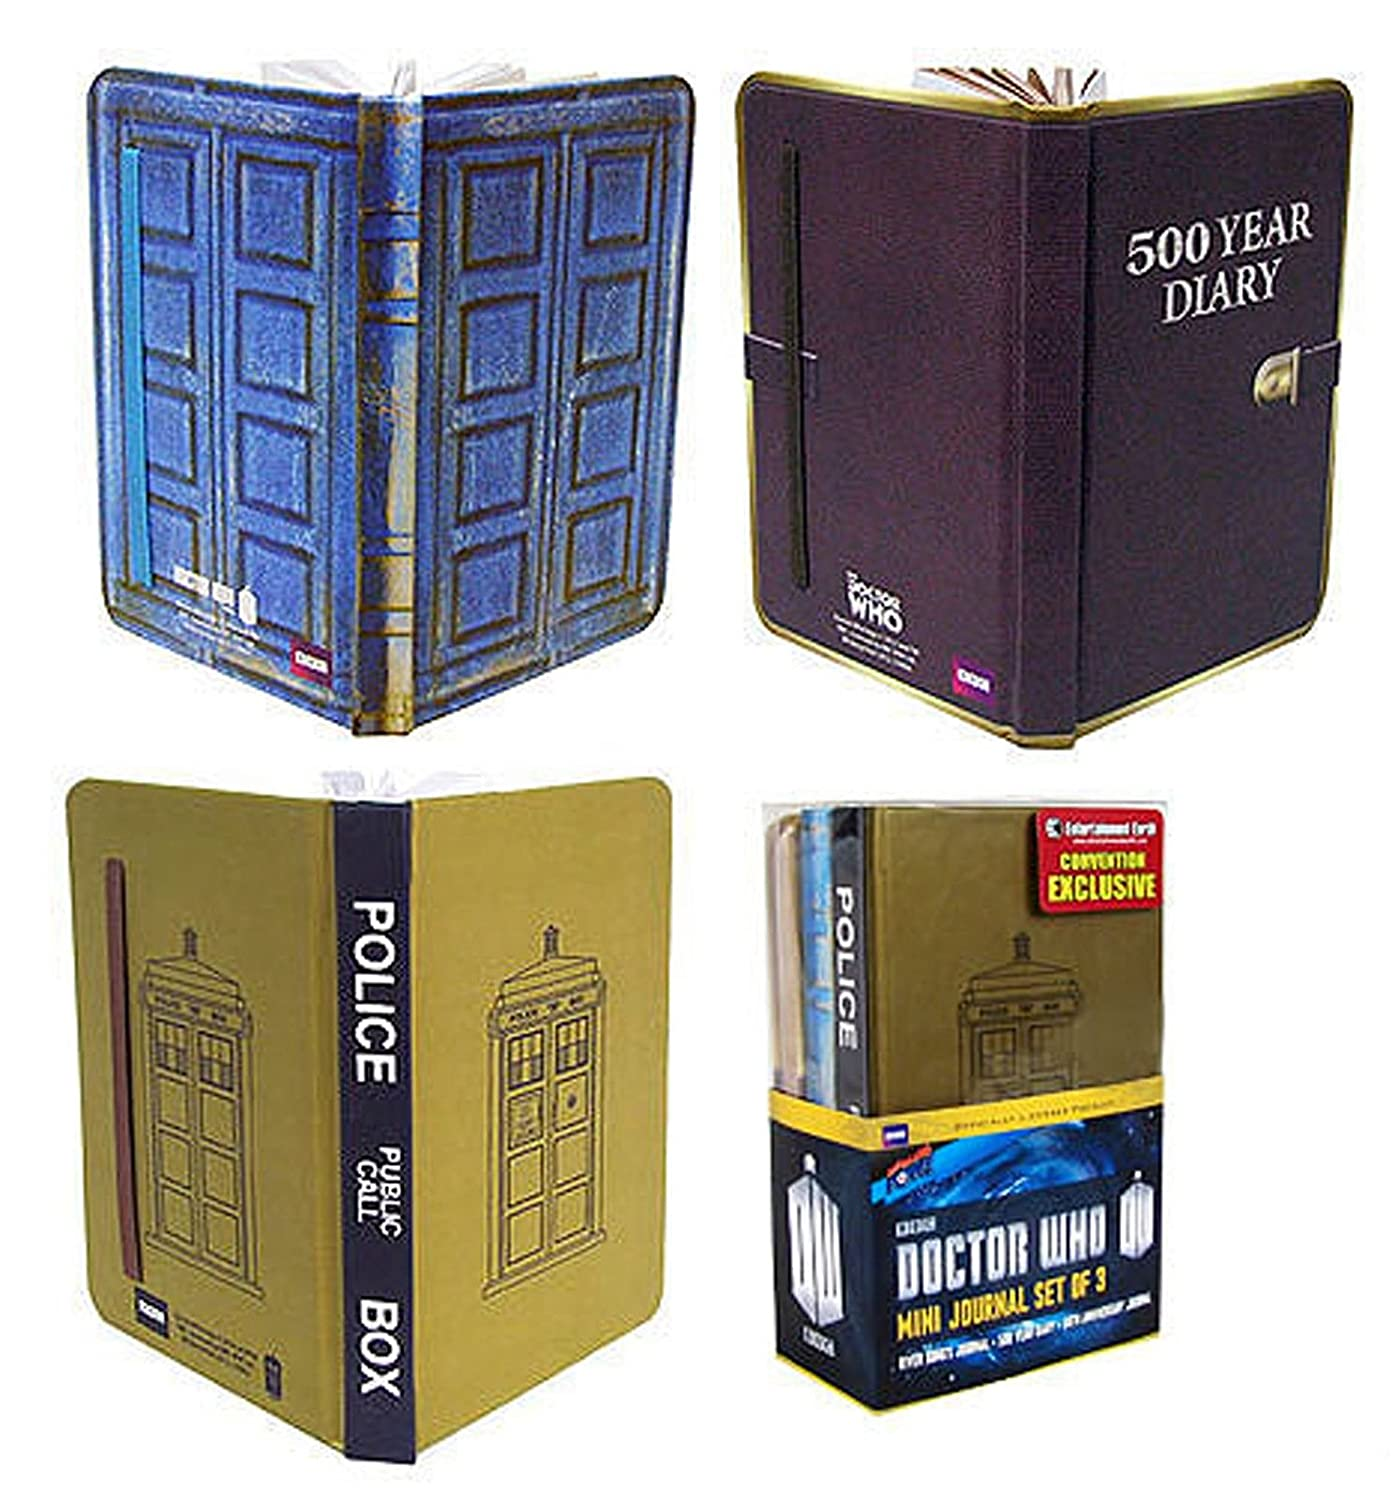 Doctor Who Mini-Journal Set of 3 - Convention Exclusive big bang pow